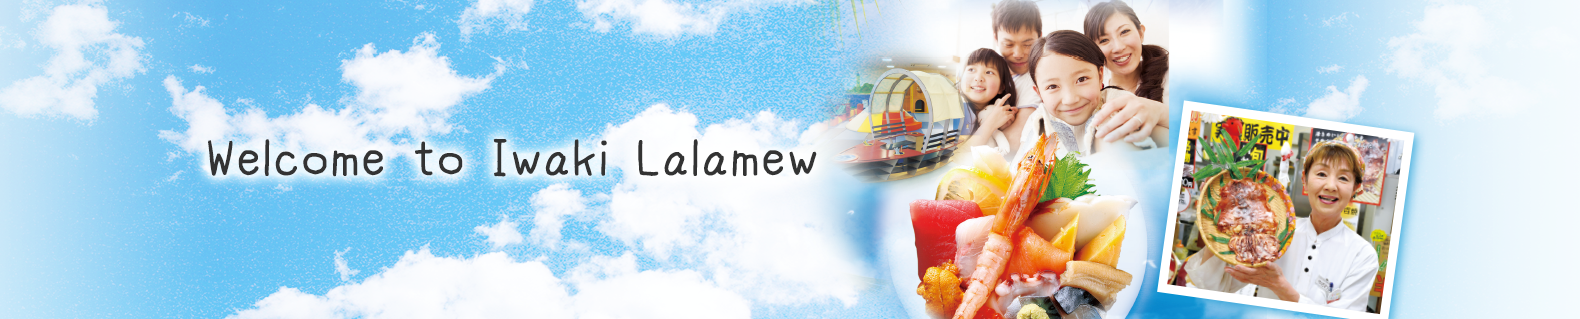 Welcome to Iwaki Lalamew